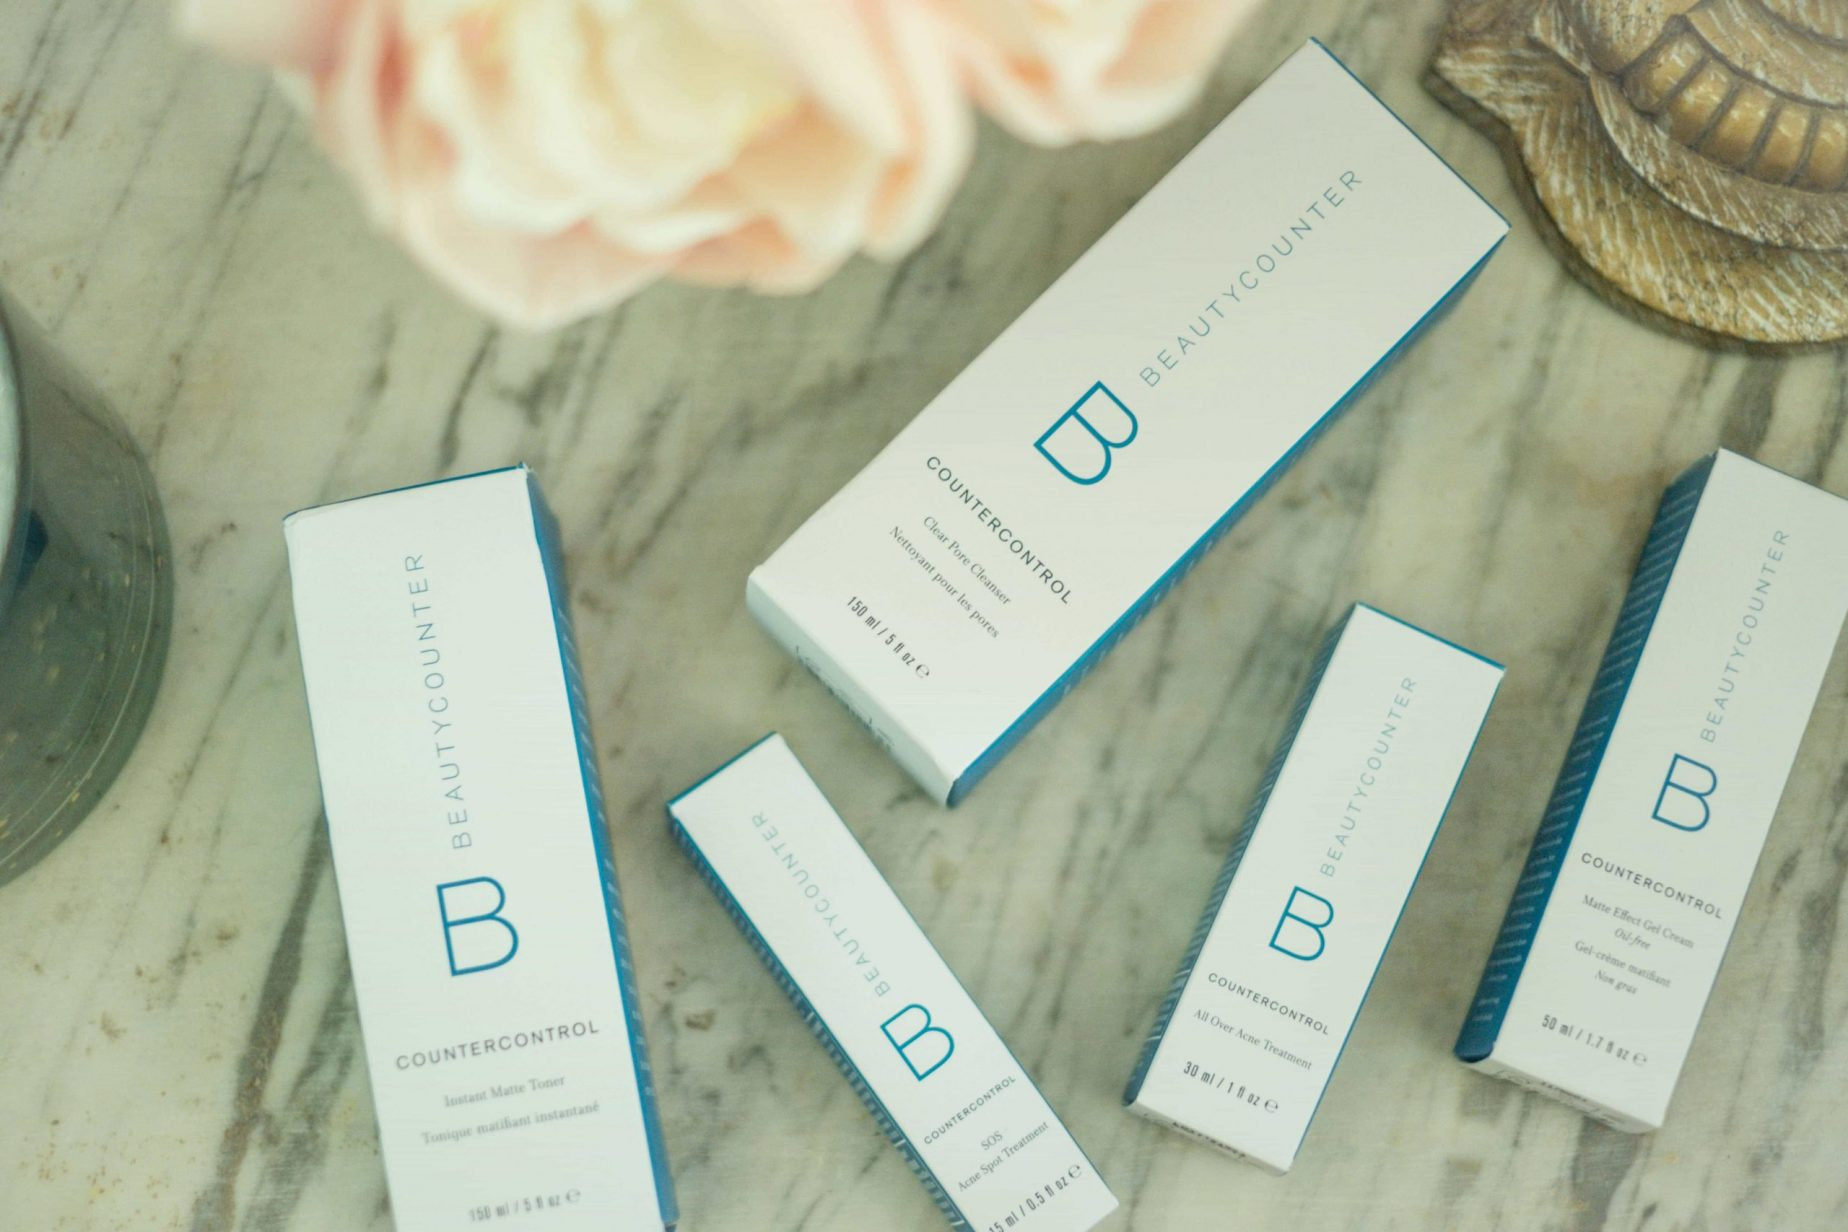 IS BEAUTYCOUNTER'S COUNTERCONTROL THE NEW NON-TOXIC PROACTIV- #whatsavvysaid #nontoxicmakeup #beautycounter #countercontrol #review #acneline #cleanser #toner